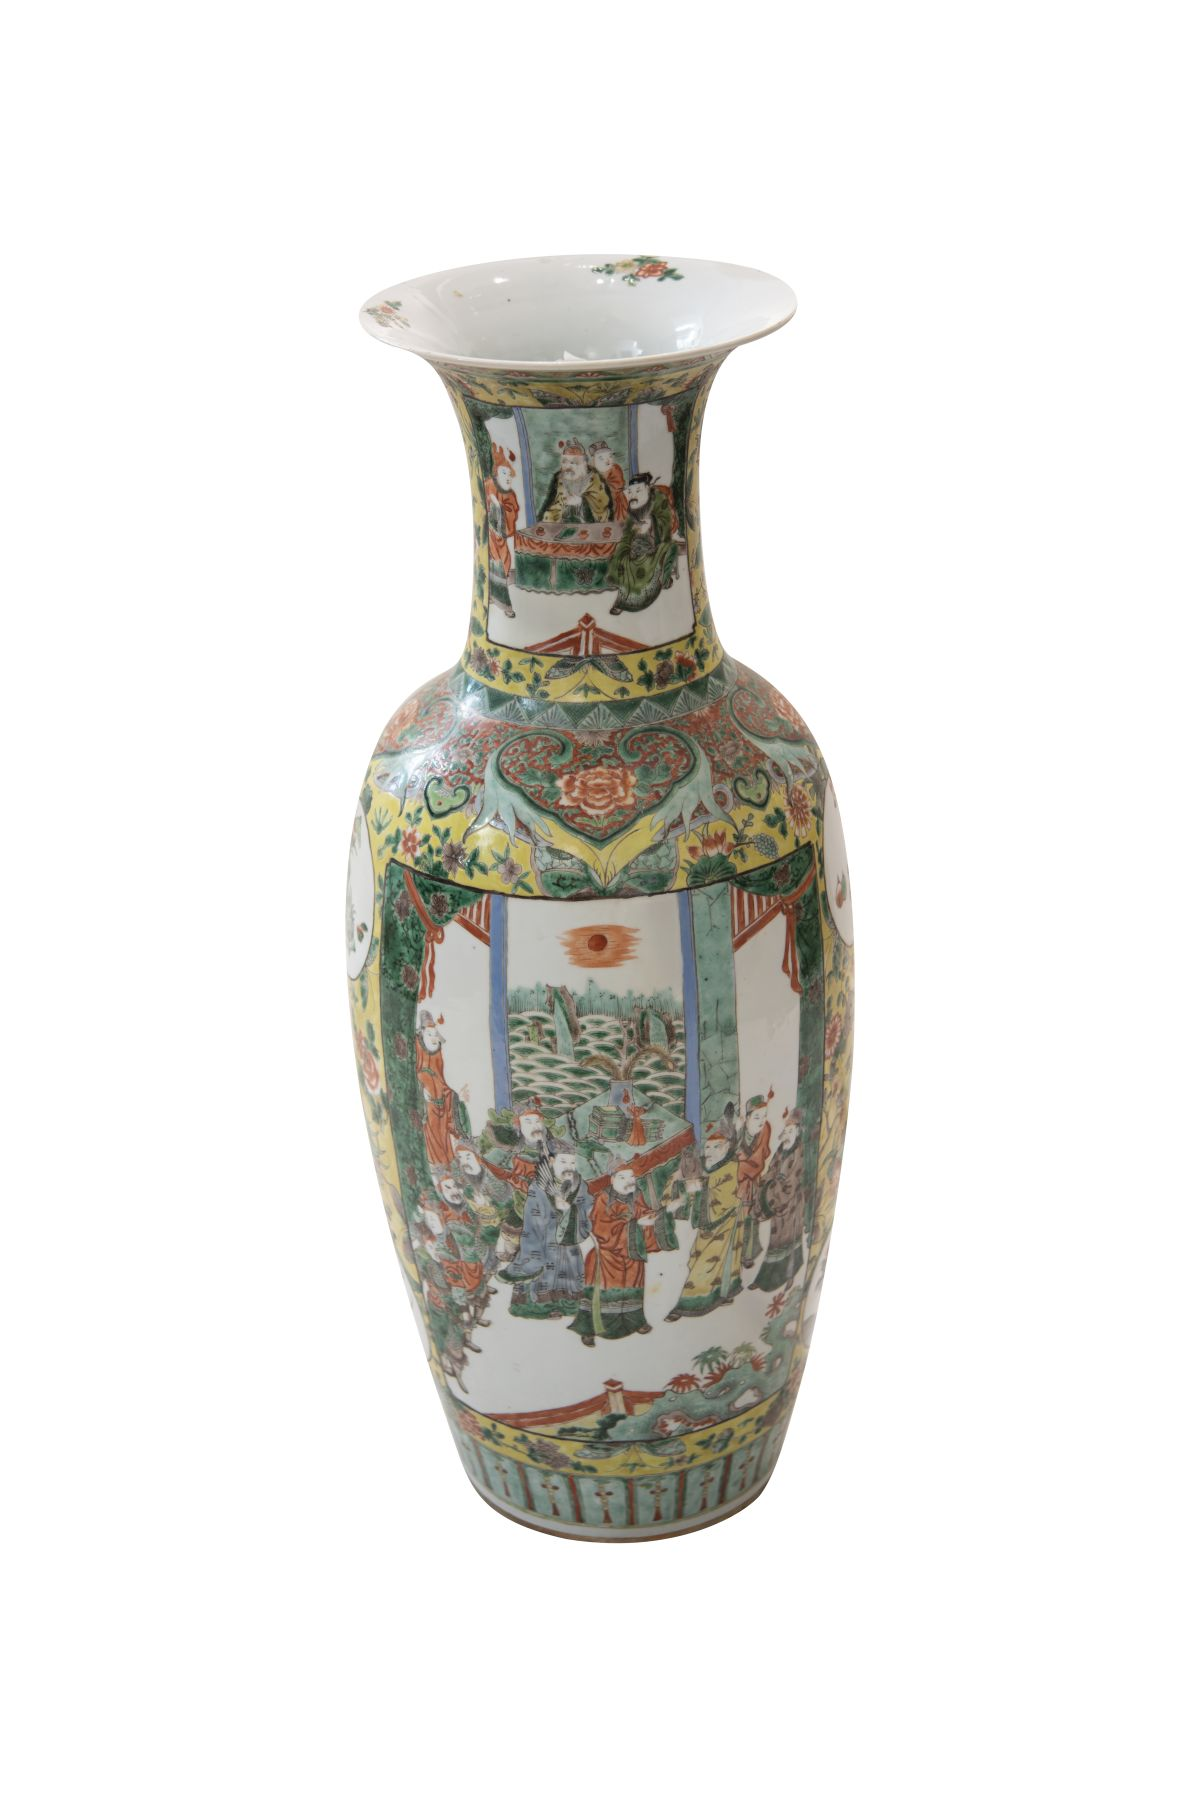 #64 Large Chinese vase Qing Dynasty 19th century | Große Chinensische Vase Qing Dynastie 19. Jh Image